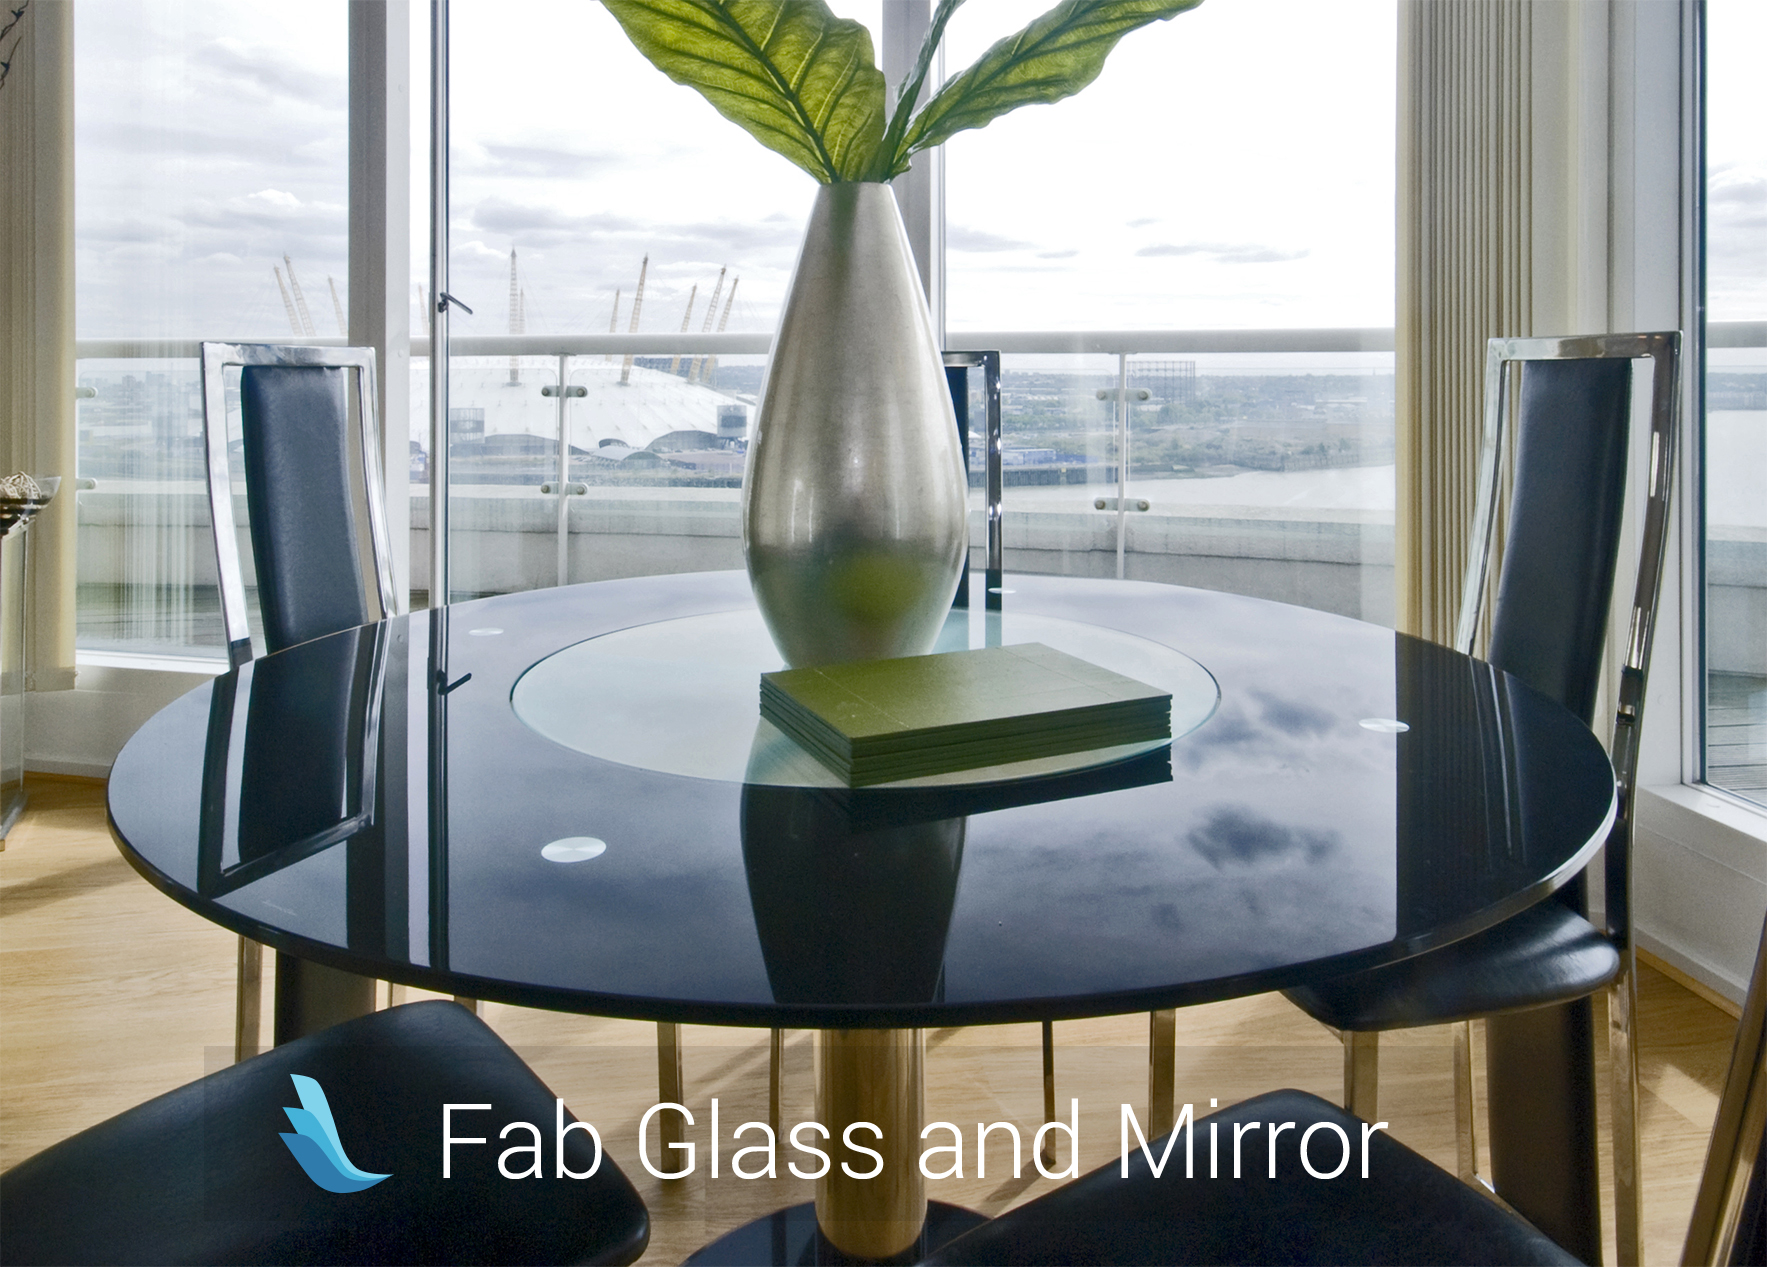 Fab Glass and Mirror Announces the Launch of Four New Types of High ...